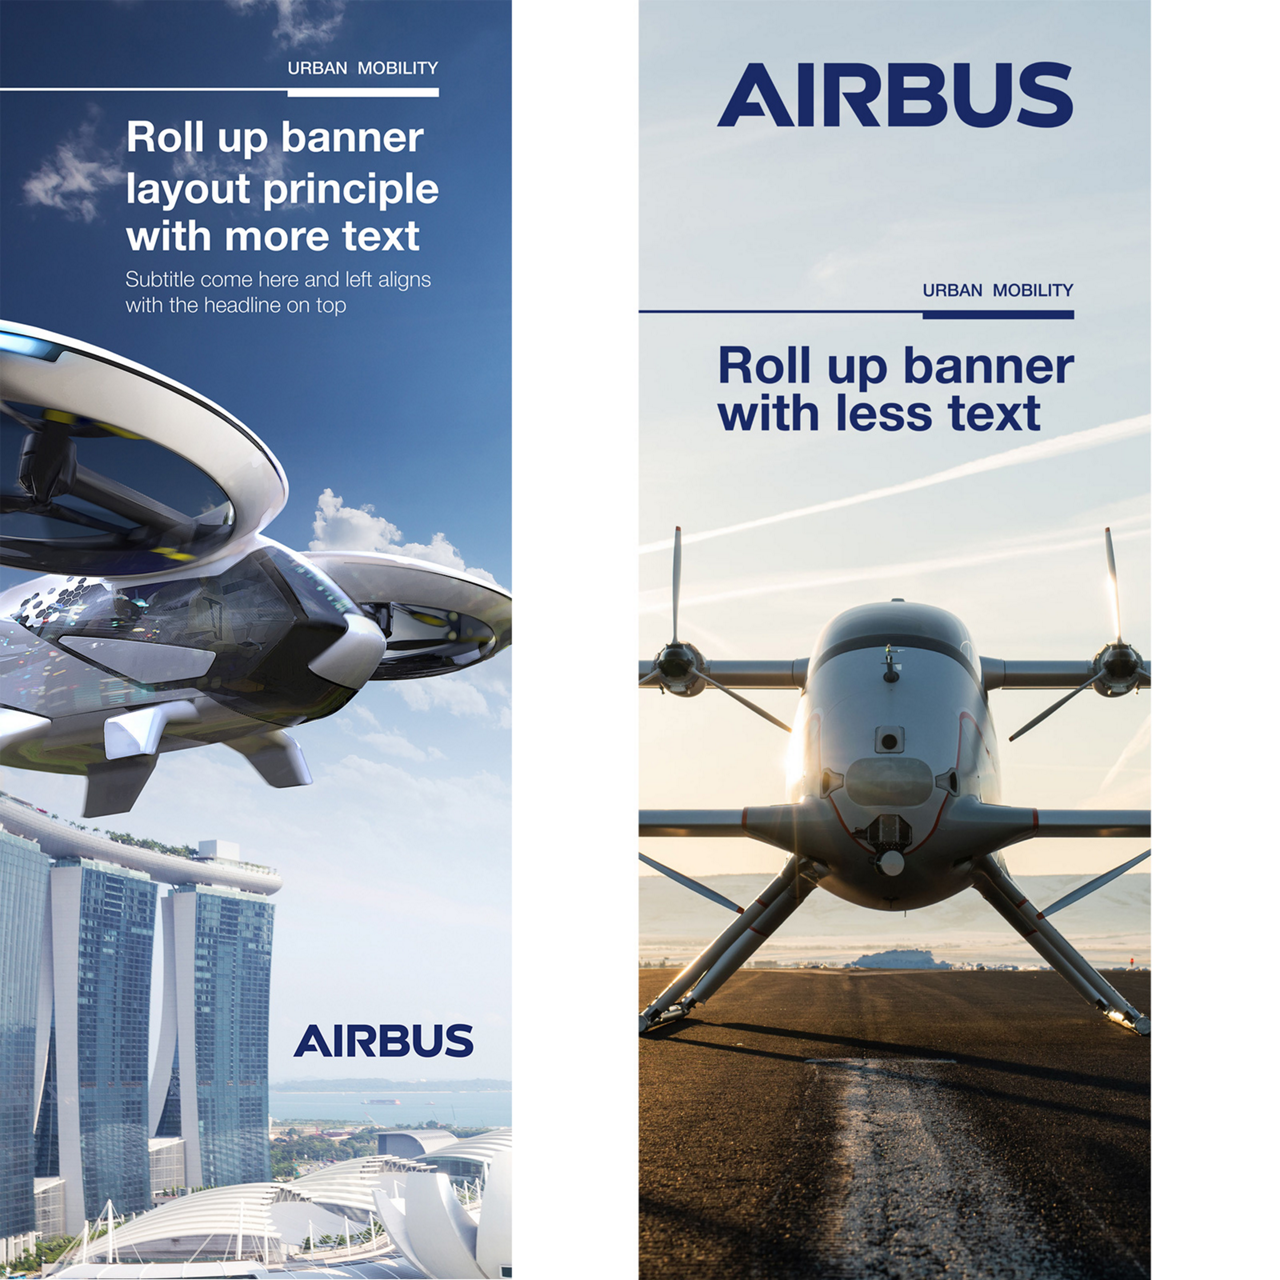 AIRBUS URBAN MOBILITY Roll Up